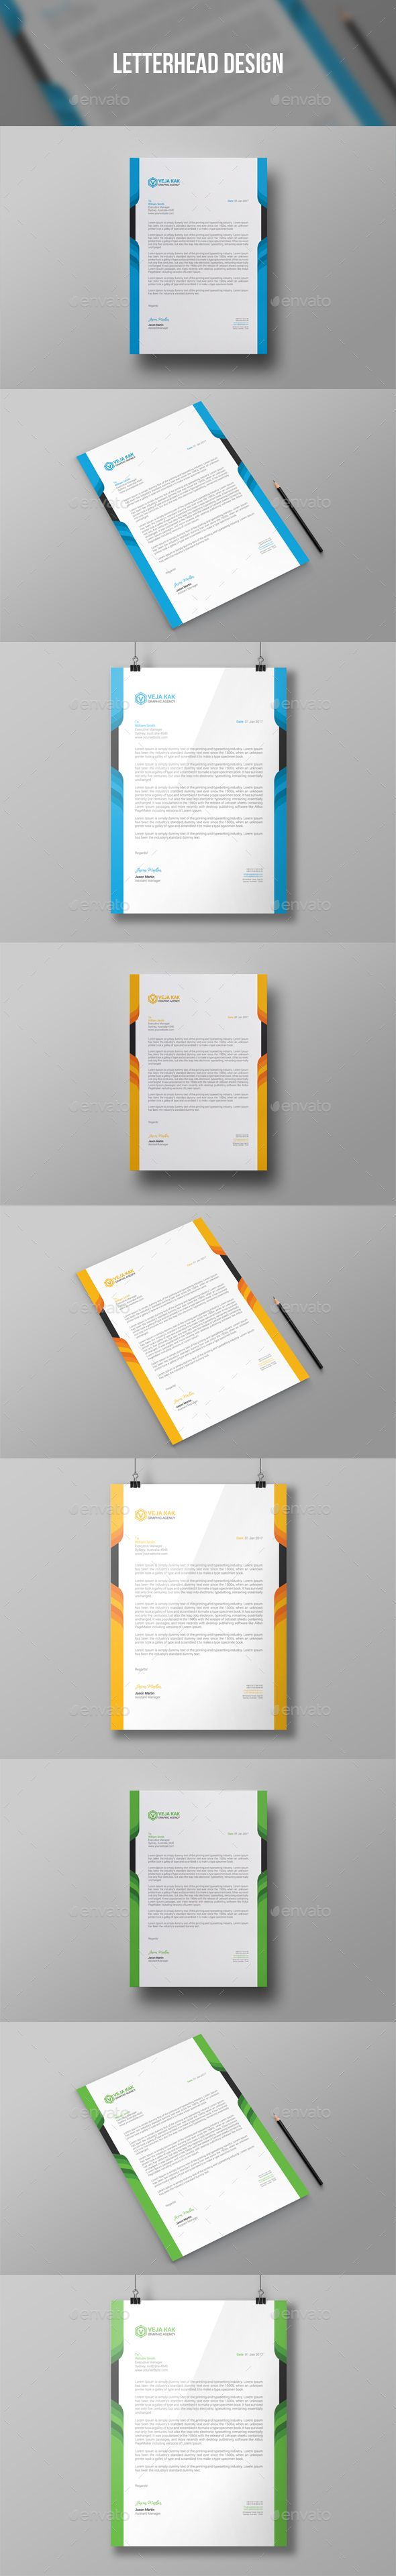 letterhead design stationery print templates download here httpsgraphicrivernetitemletterhead design19379549refalena994